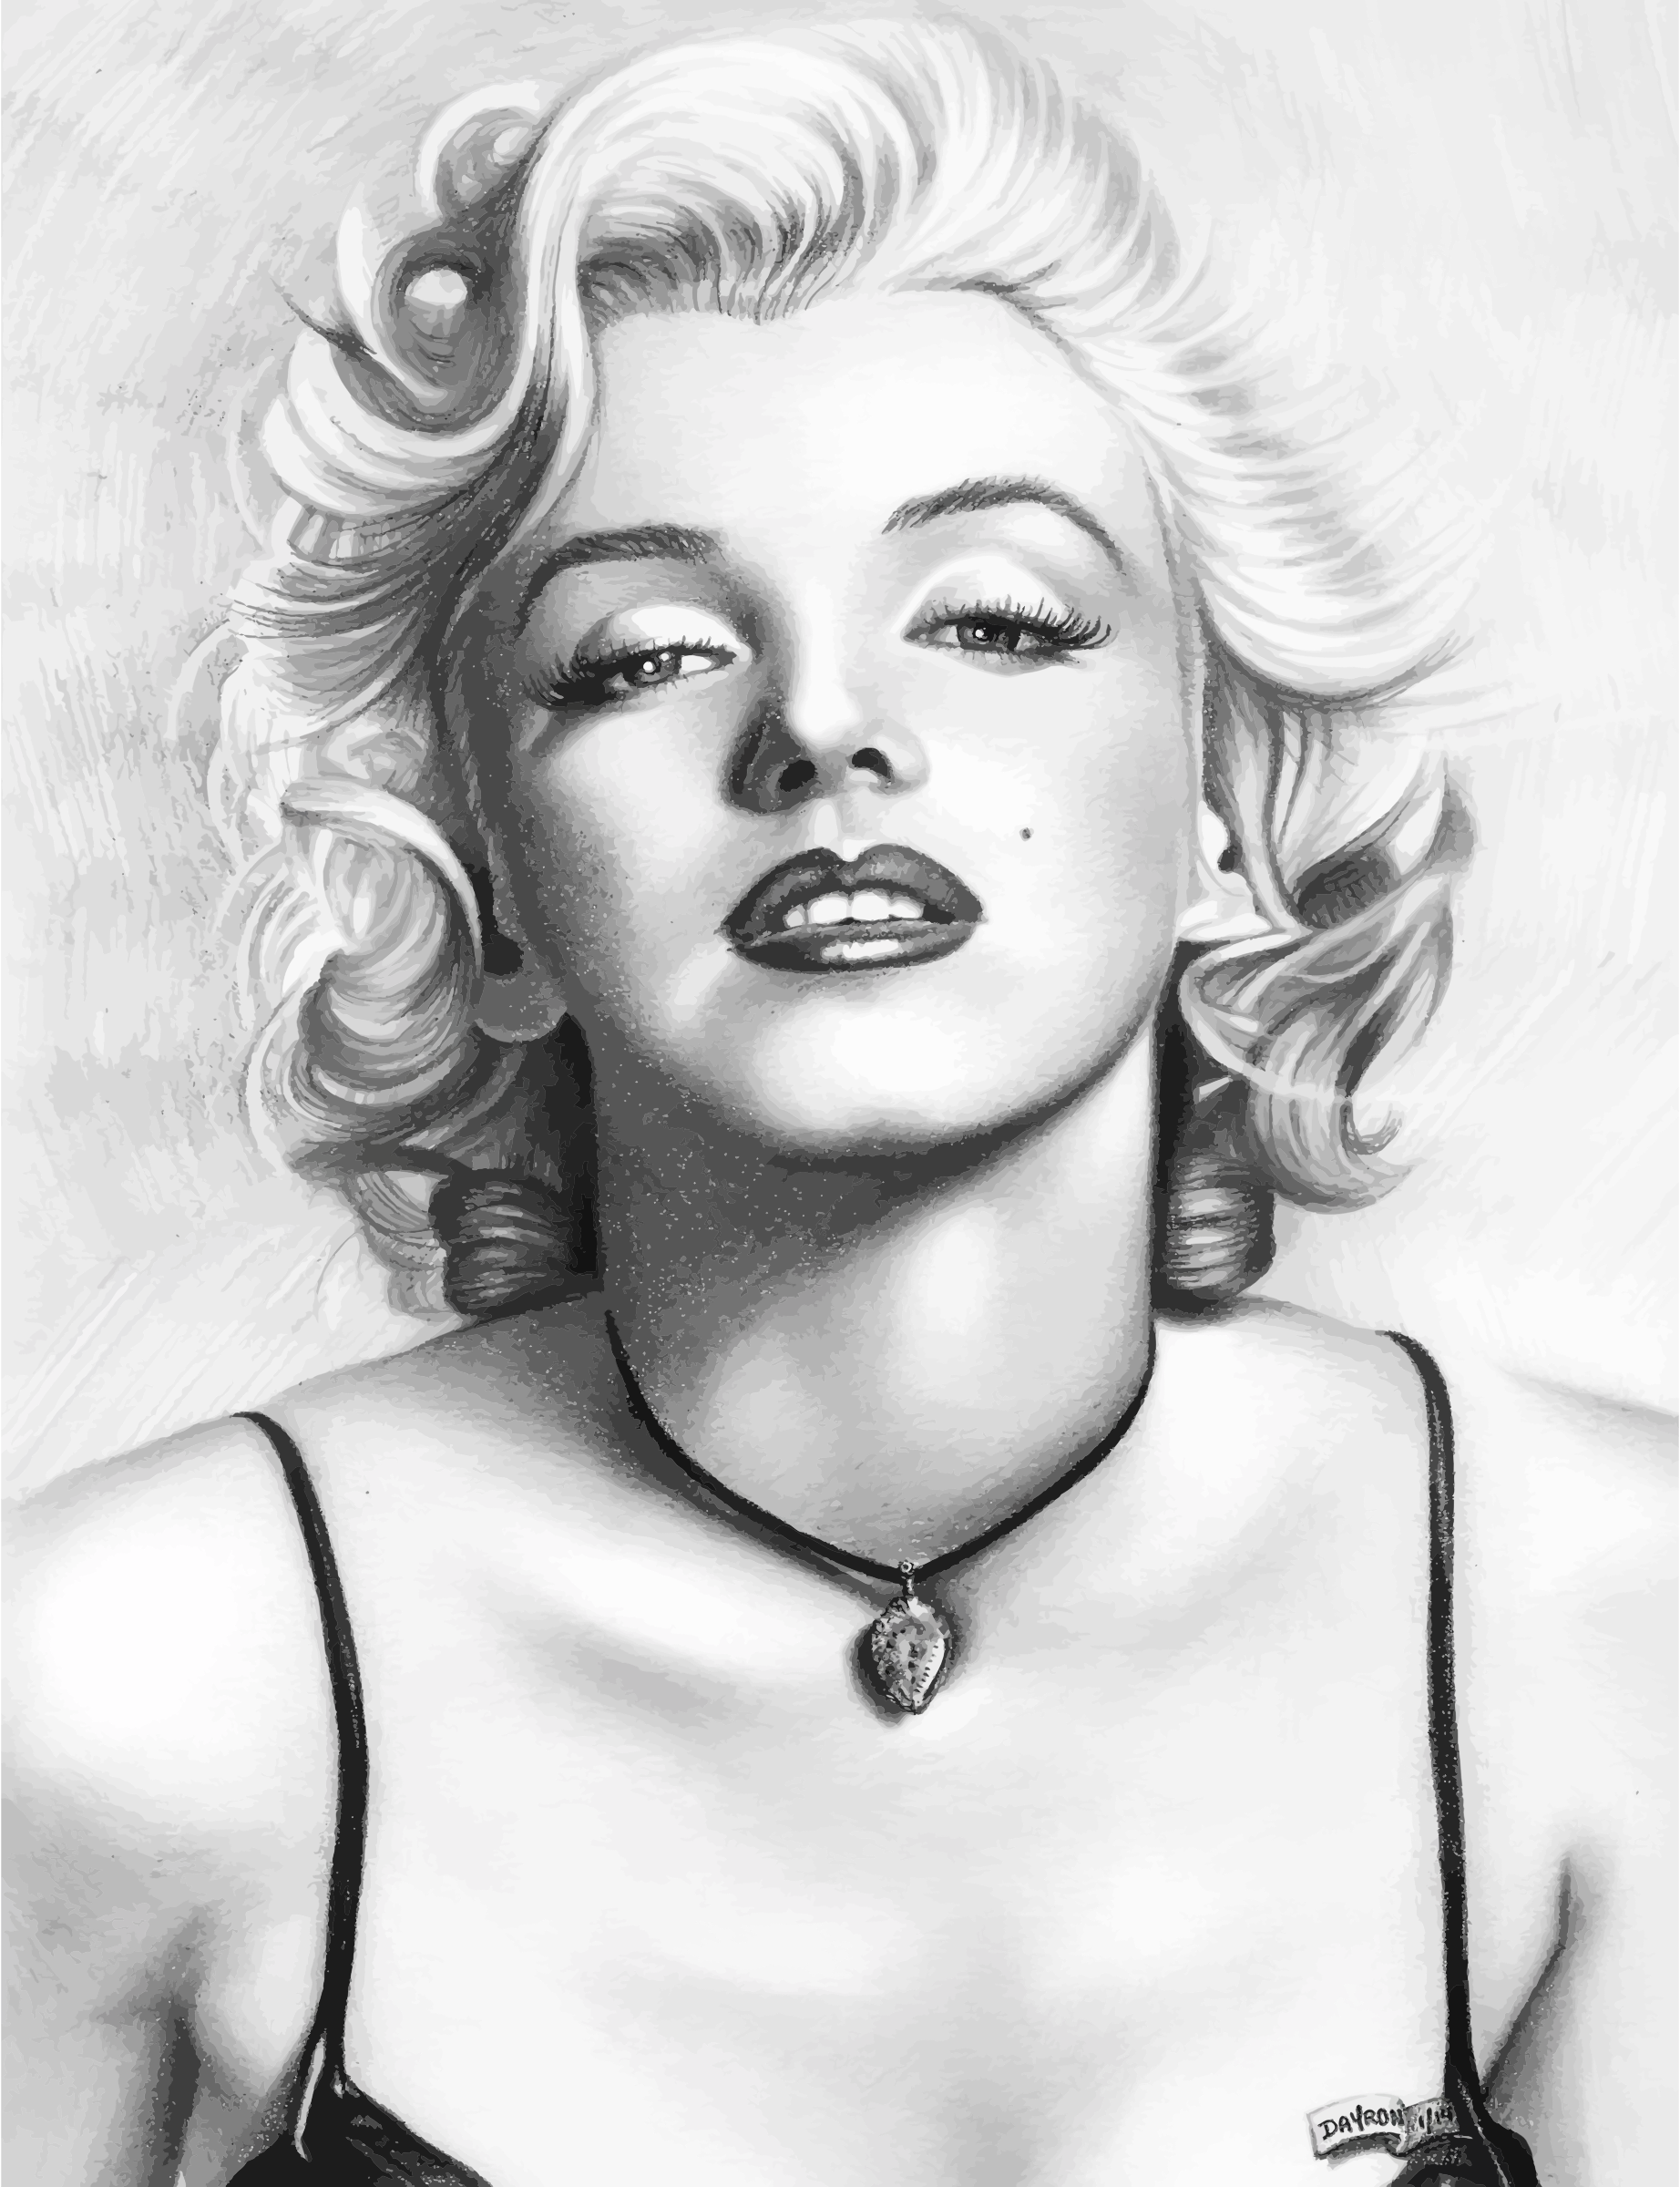 Drawing candy hyper realistic. Of marilyn monroe capturing